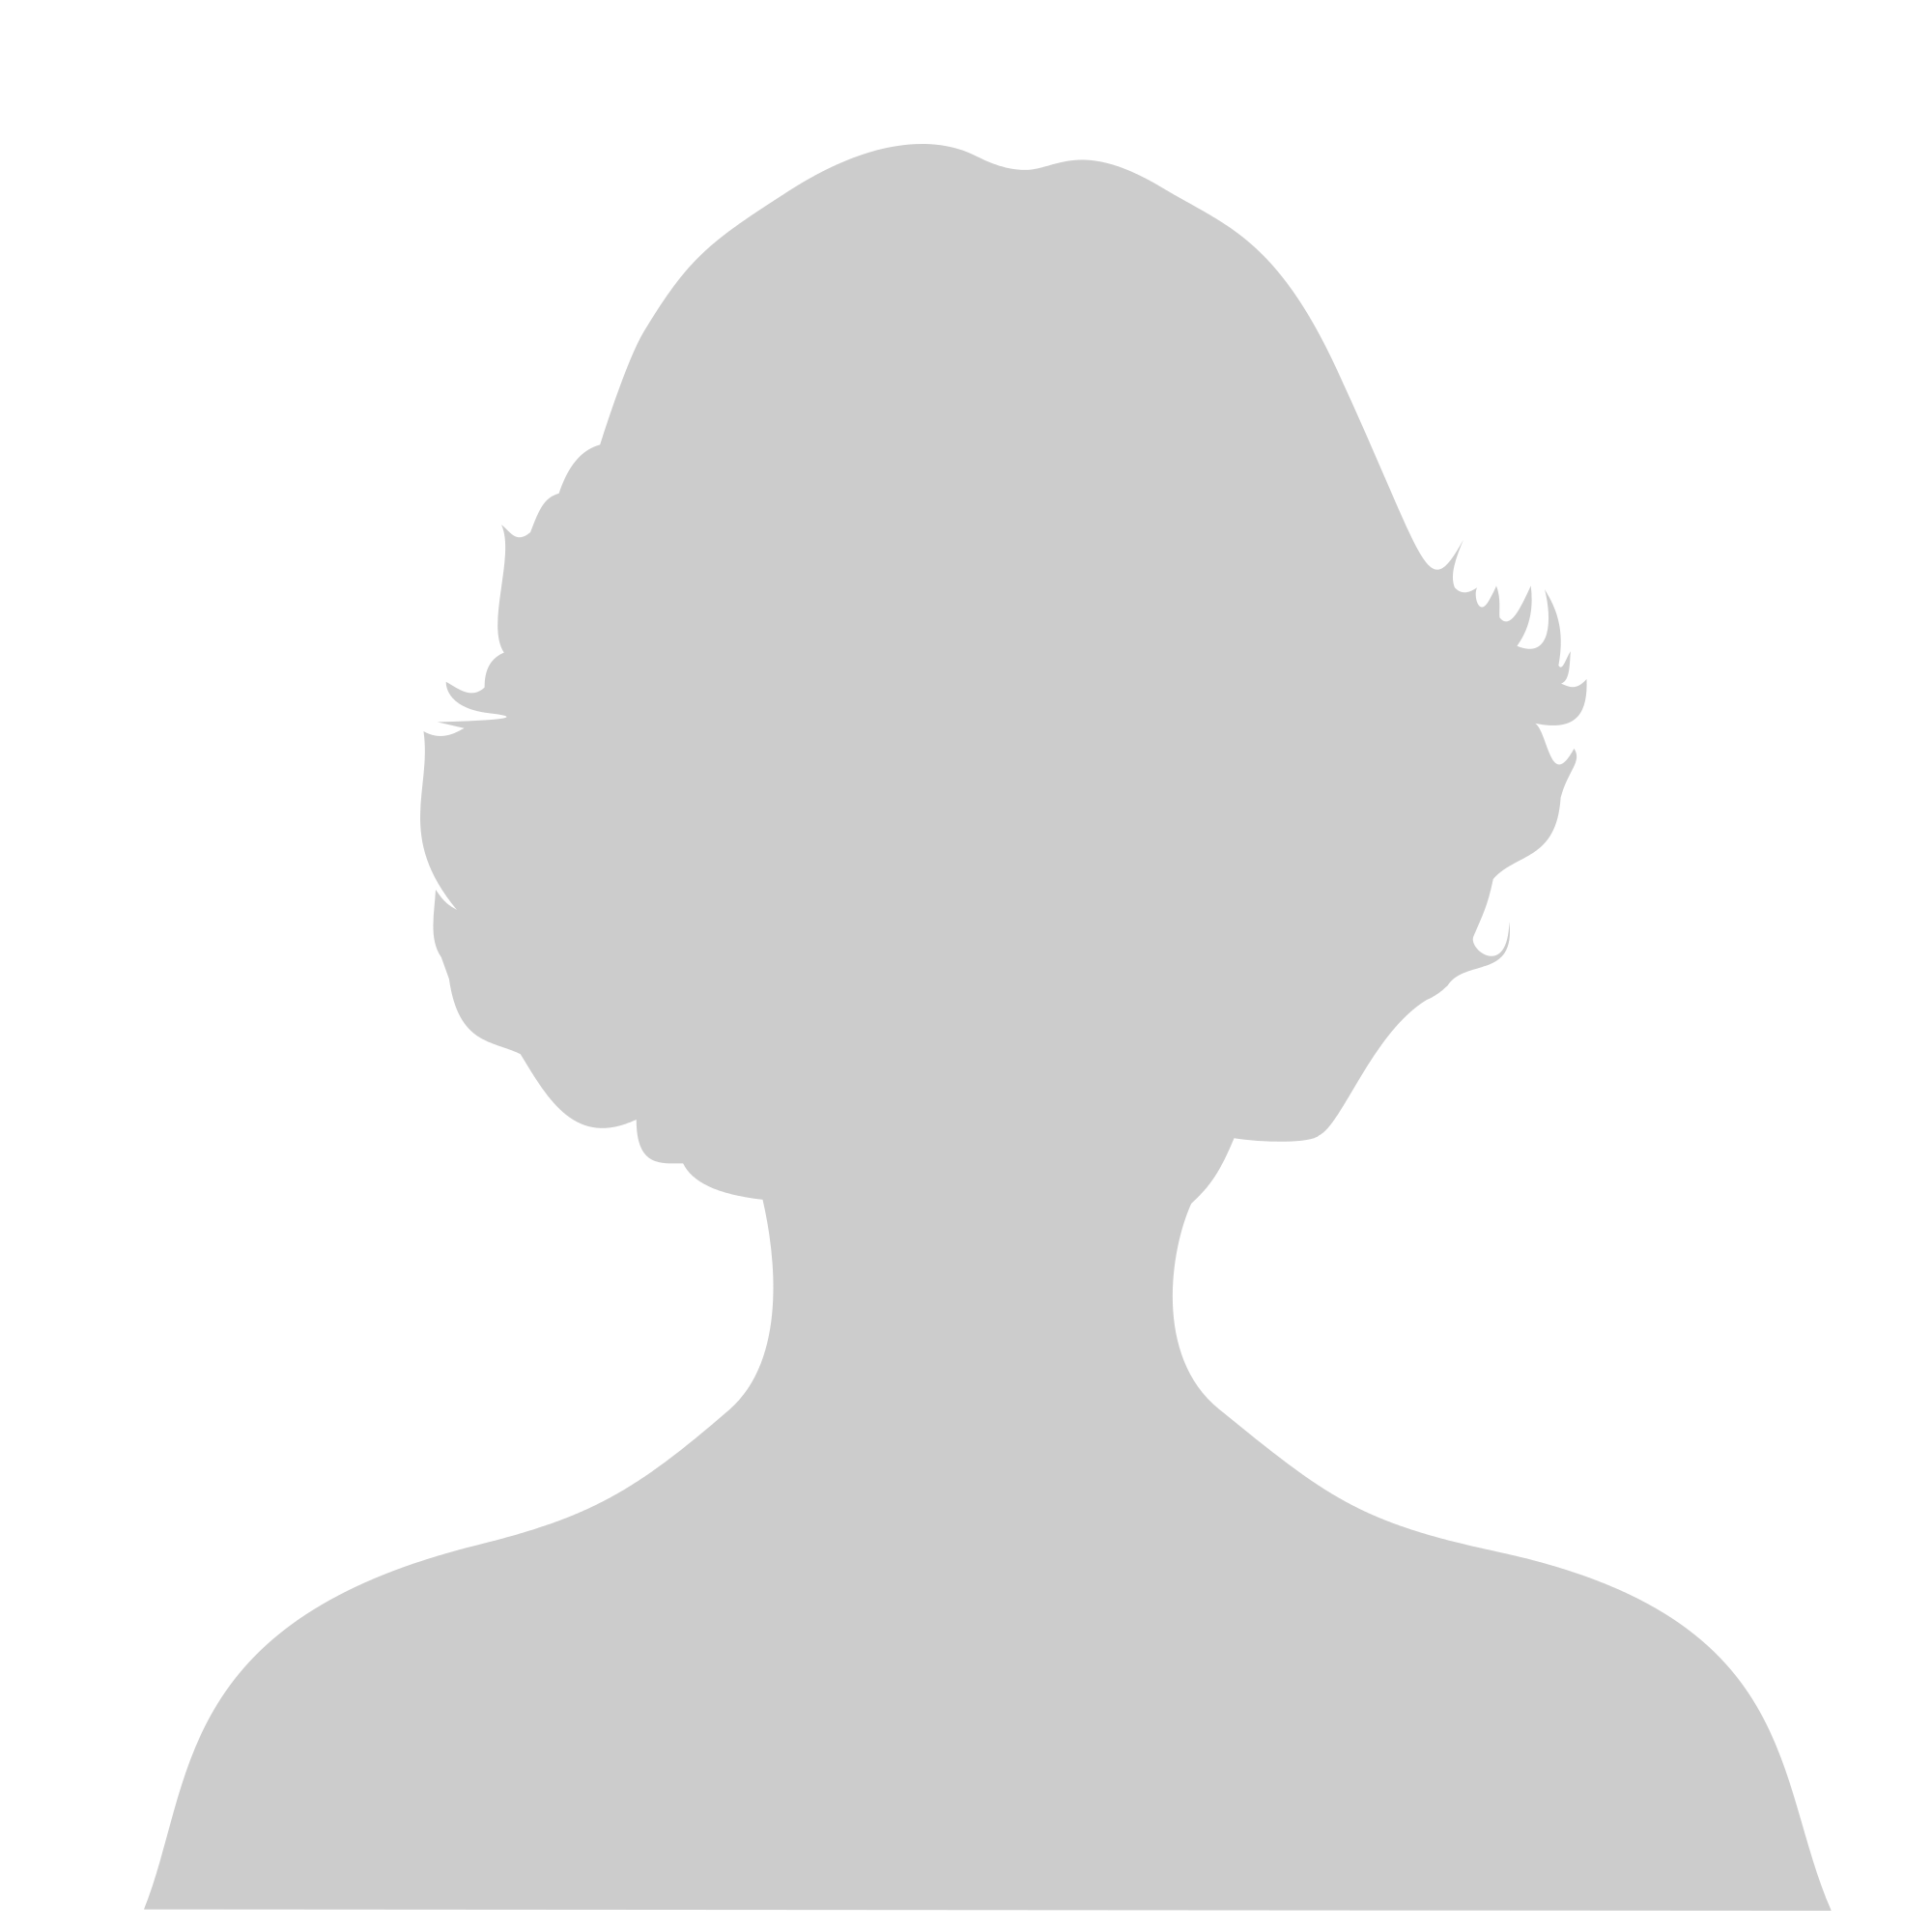 blank-profile-picture-png-file-woman-placeholder-svg-clip-art-library-download-blank-person-png-2000_2000.png